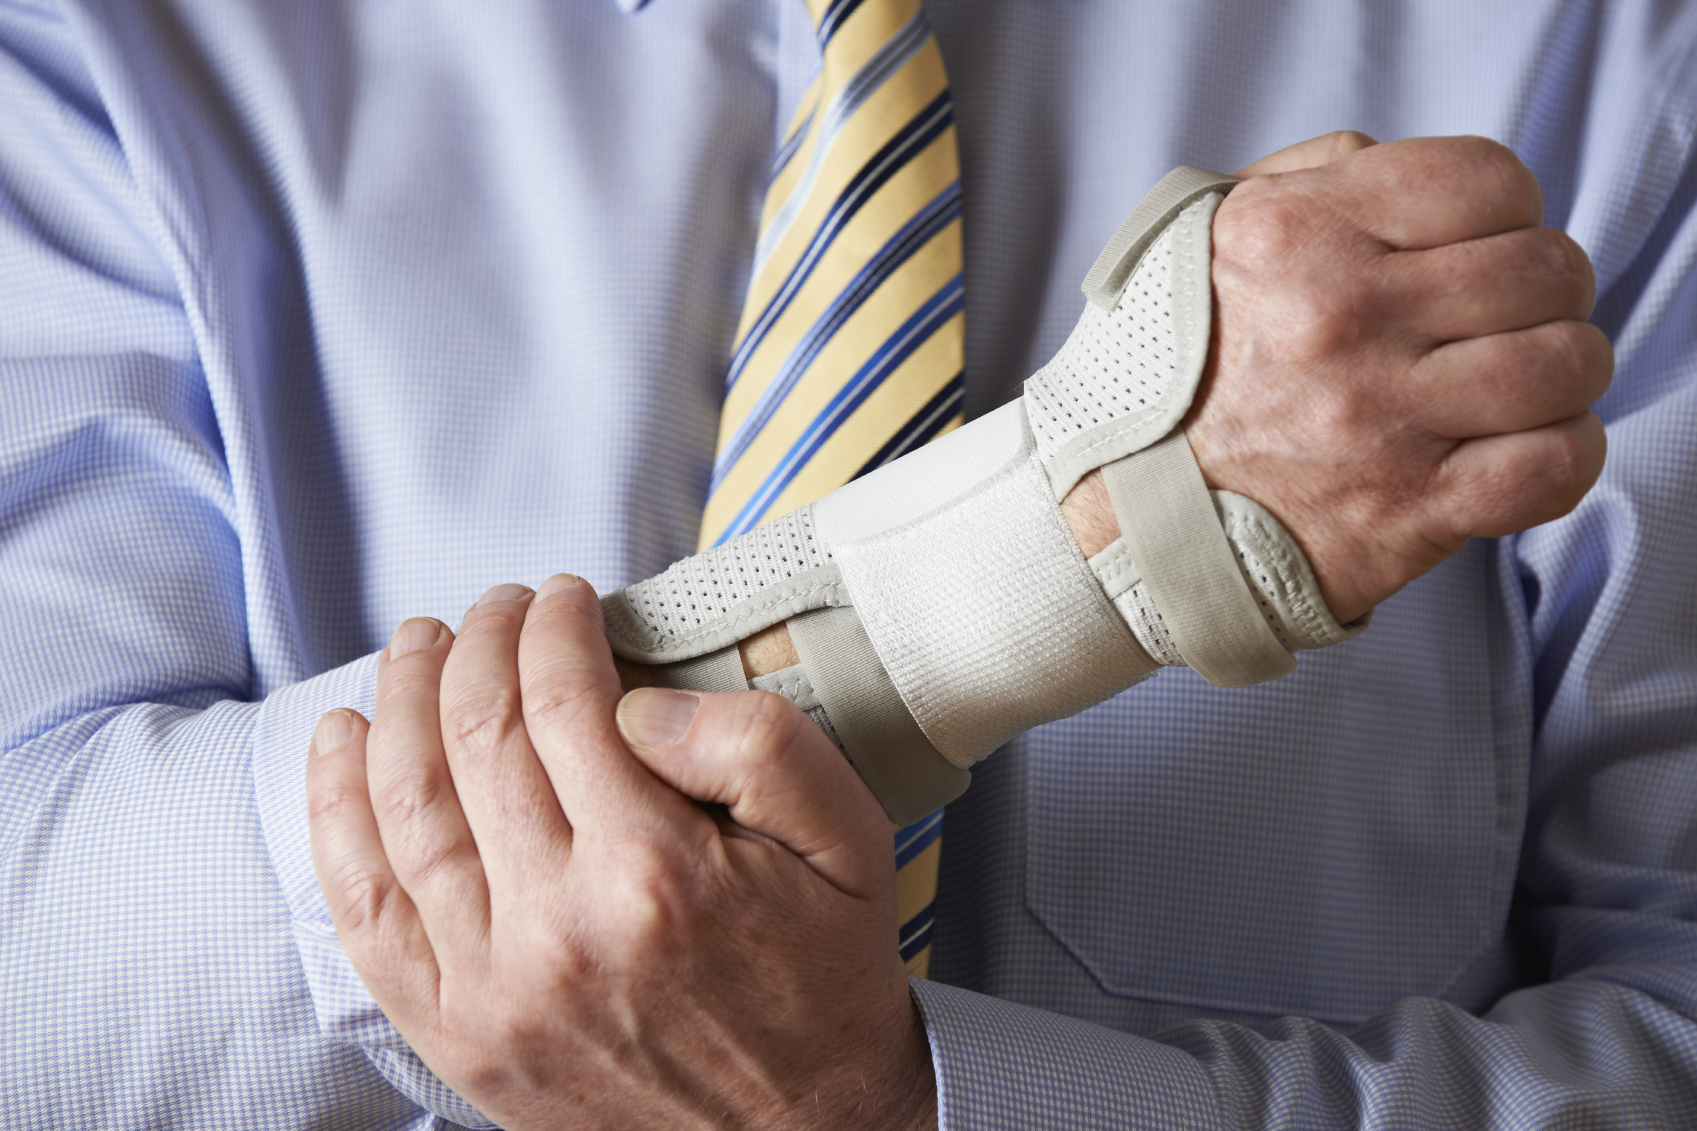 Common Injuries That Can Occur At The Drop Of A Hat